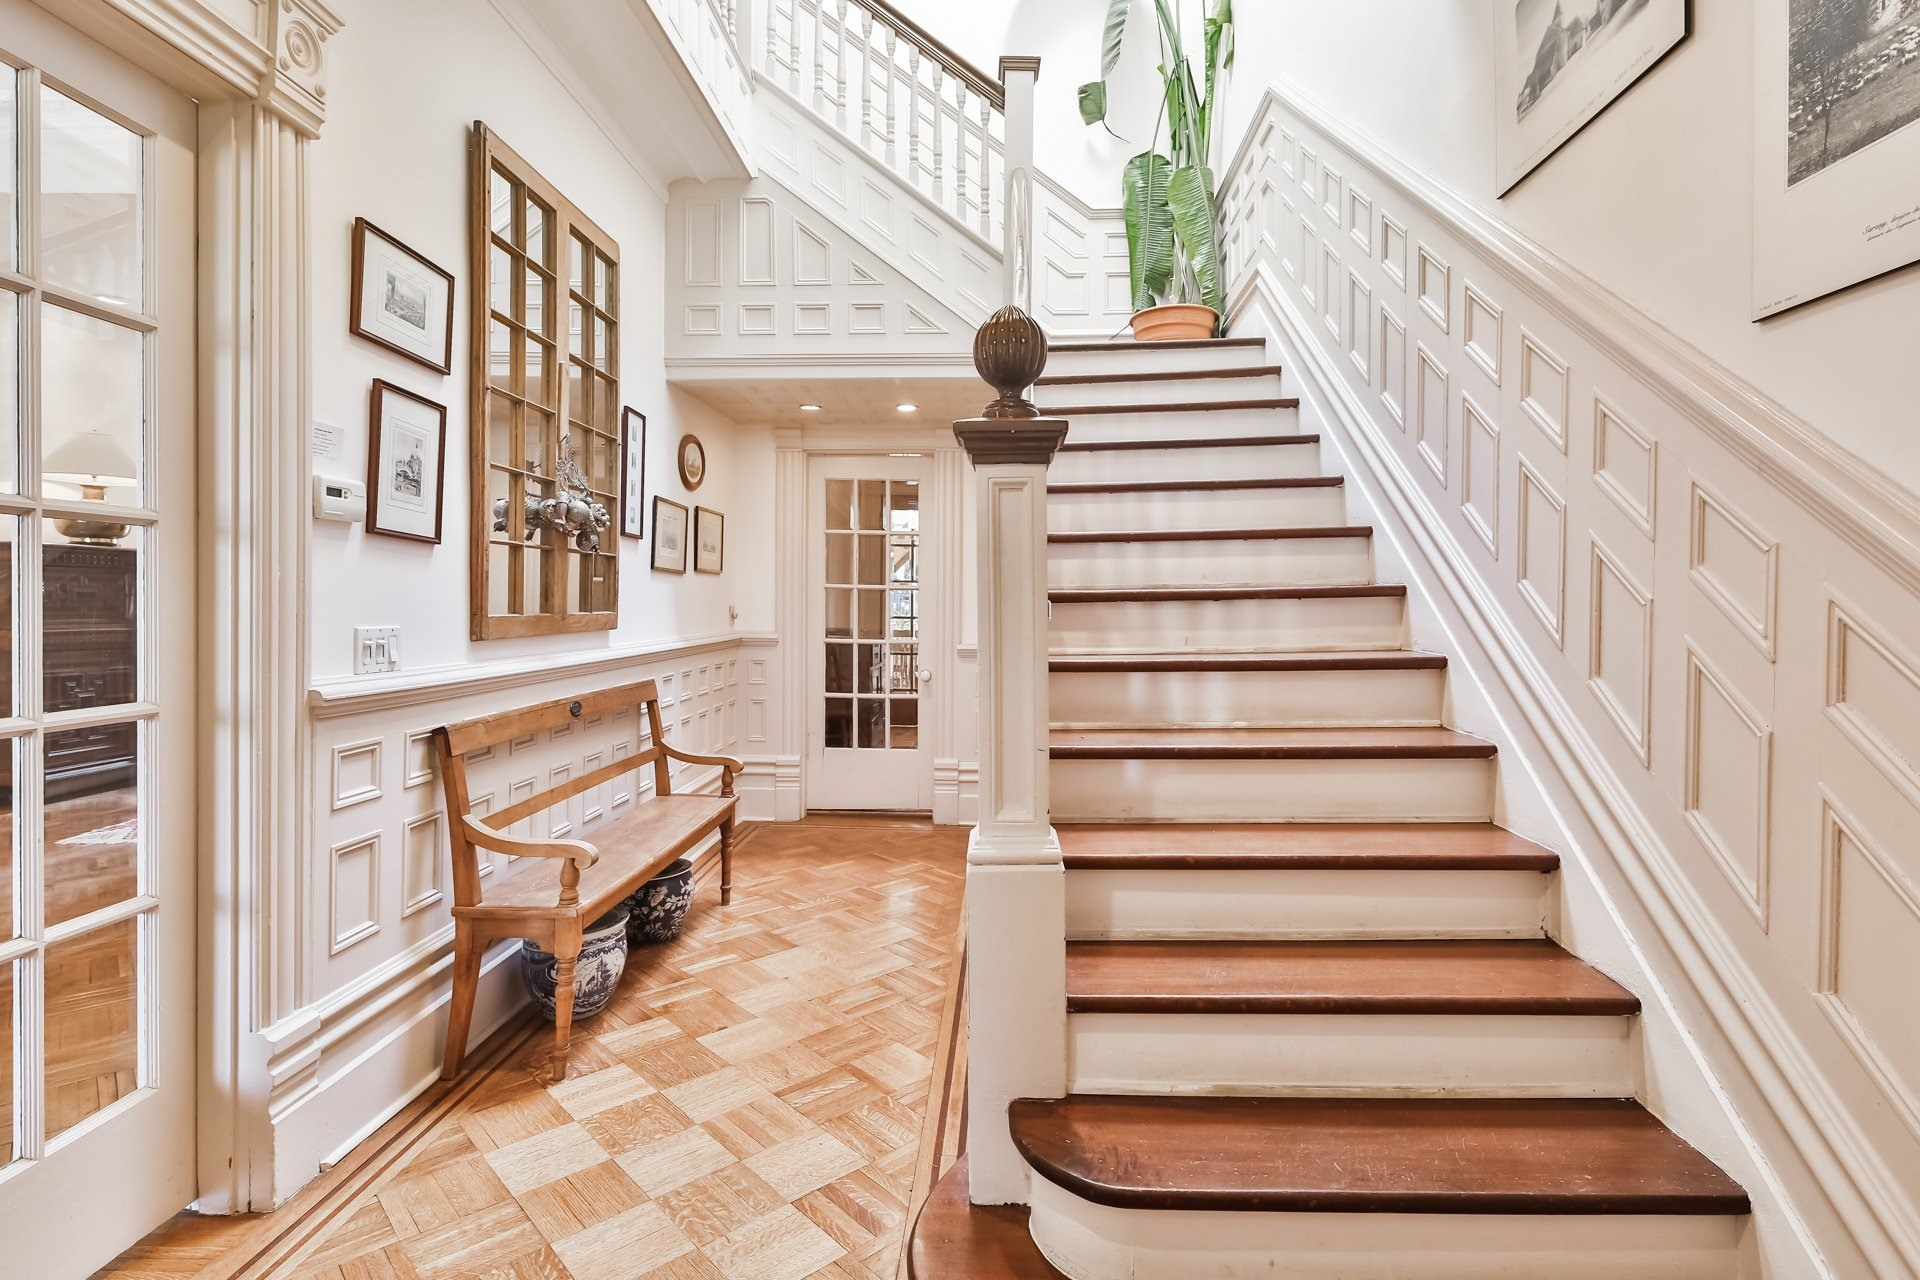 image 2 - House For sale Westmount - 12 rooms